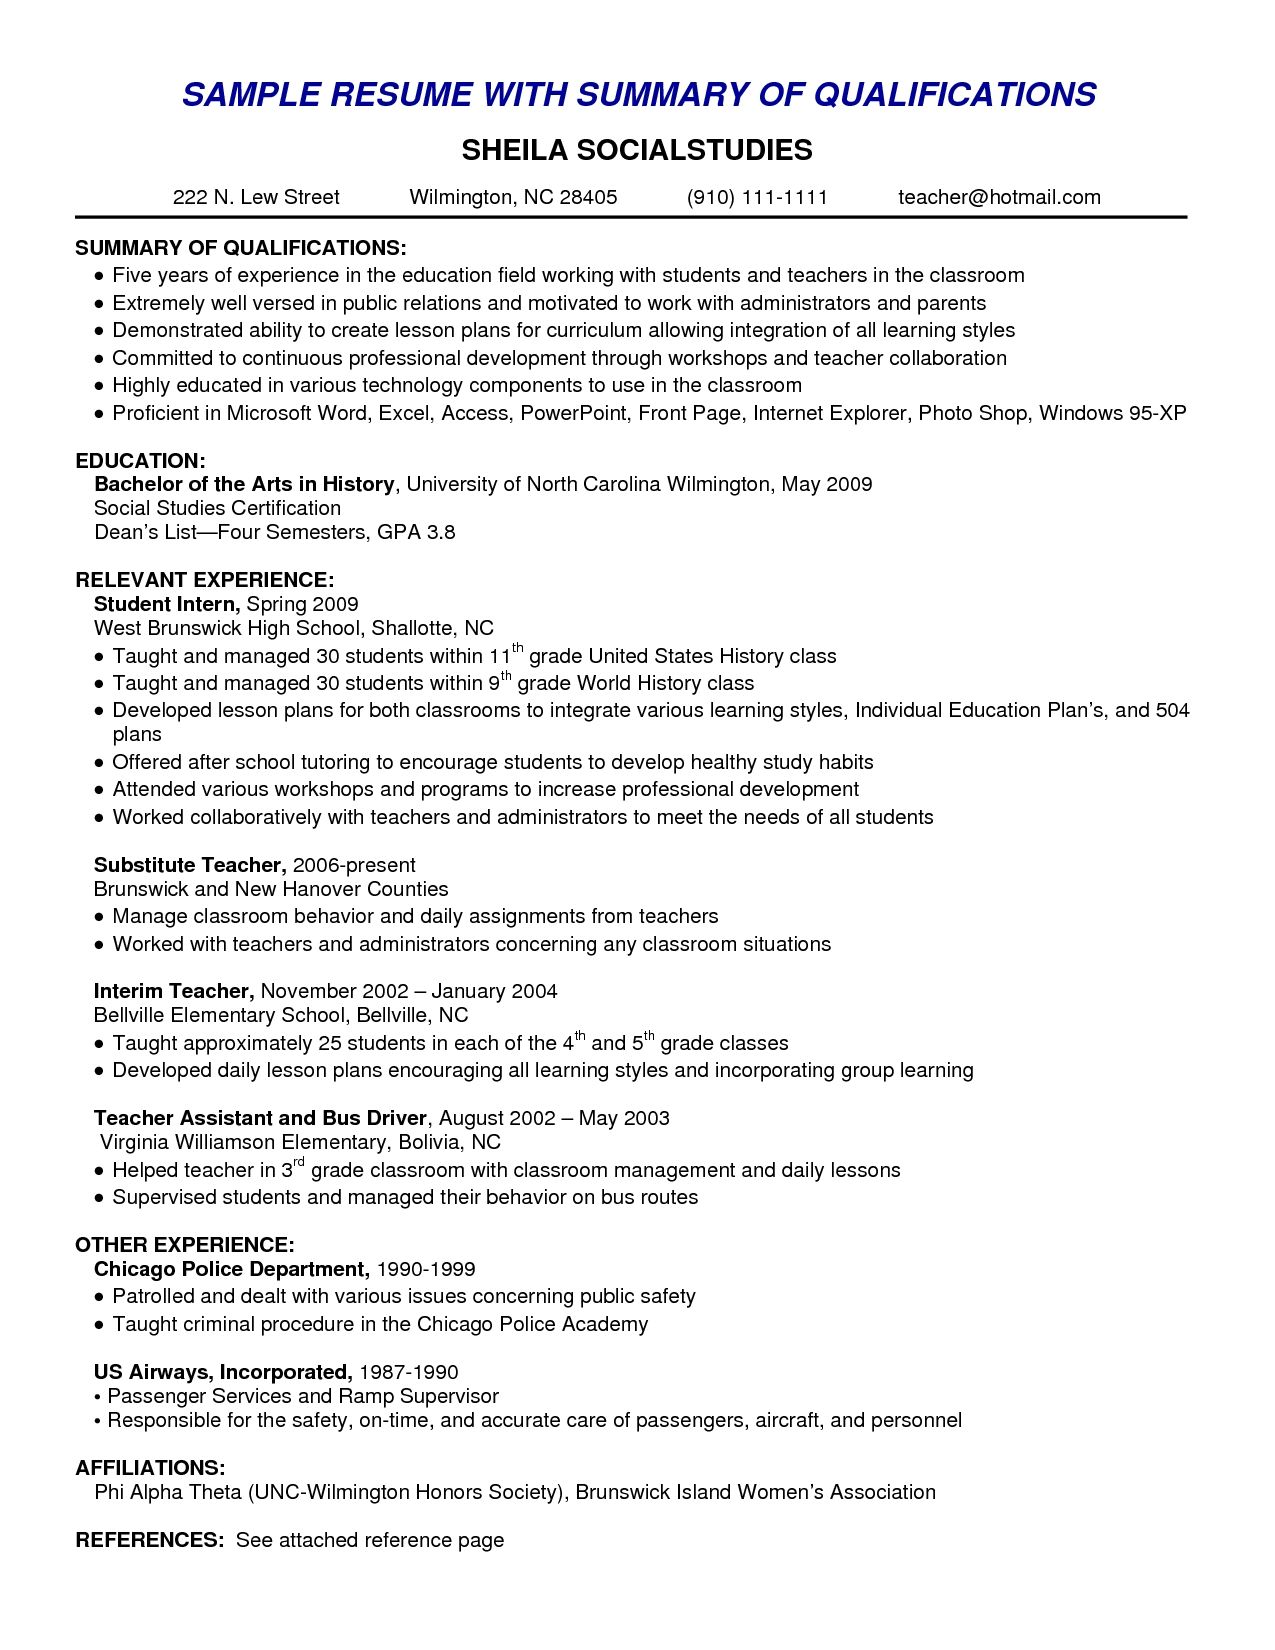 What To Put On A Resume For Skills Stunning Resume Skills Summary Examples Example Of Skills Summary For 2018